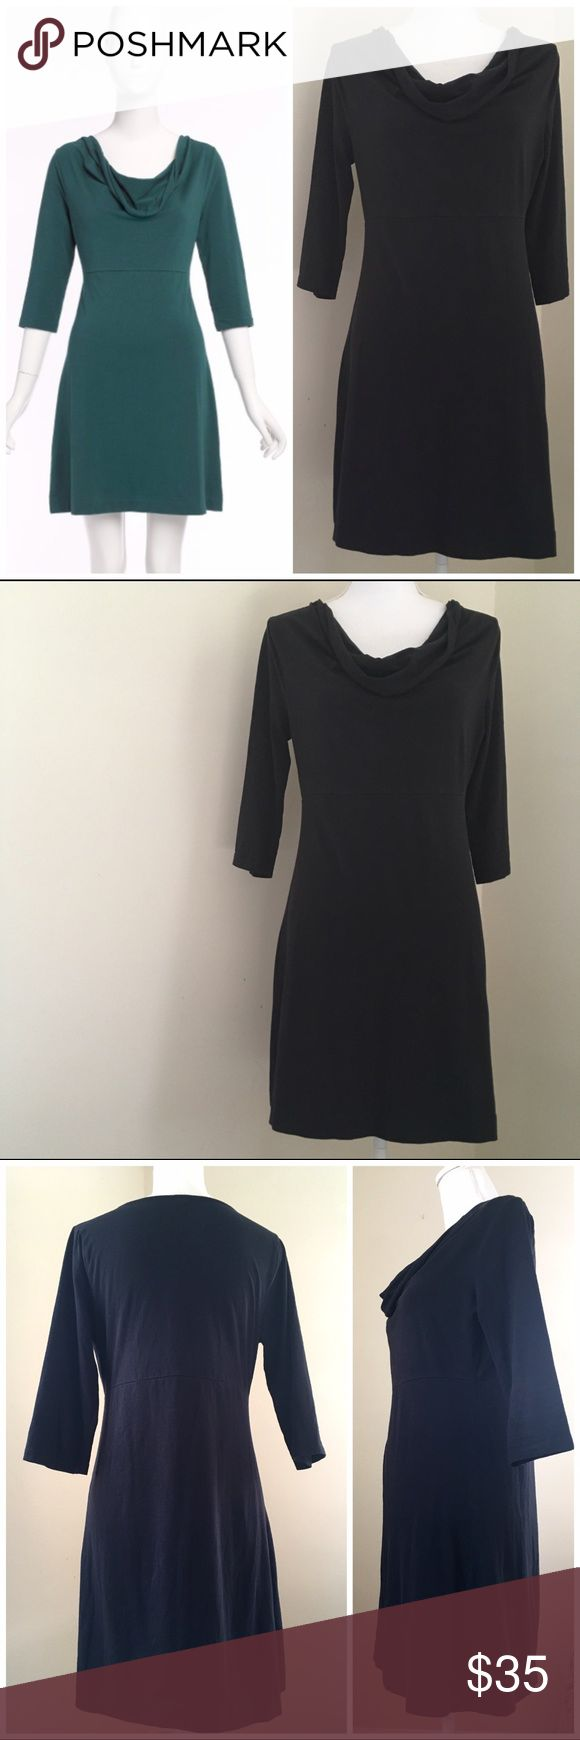 "J Crew Factory Black Cowlneck Softspun Dress small J Crew Factory Black Cowlneck Softspun Dress 3/4 Sleeves.  Cotton/spandex. Cowlneck. Three-quarter sleeves. Machine wash. Import. 17.75"" armpit to armpit, 15.25"" across waist, 34.25"" long. J. Crew Dresses Long Sleeve"